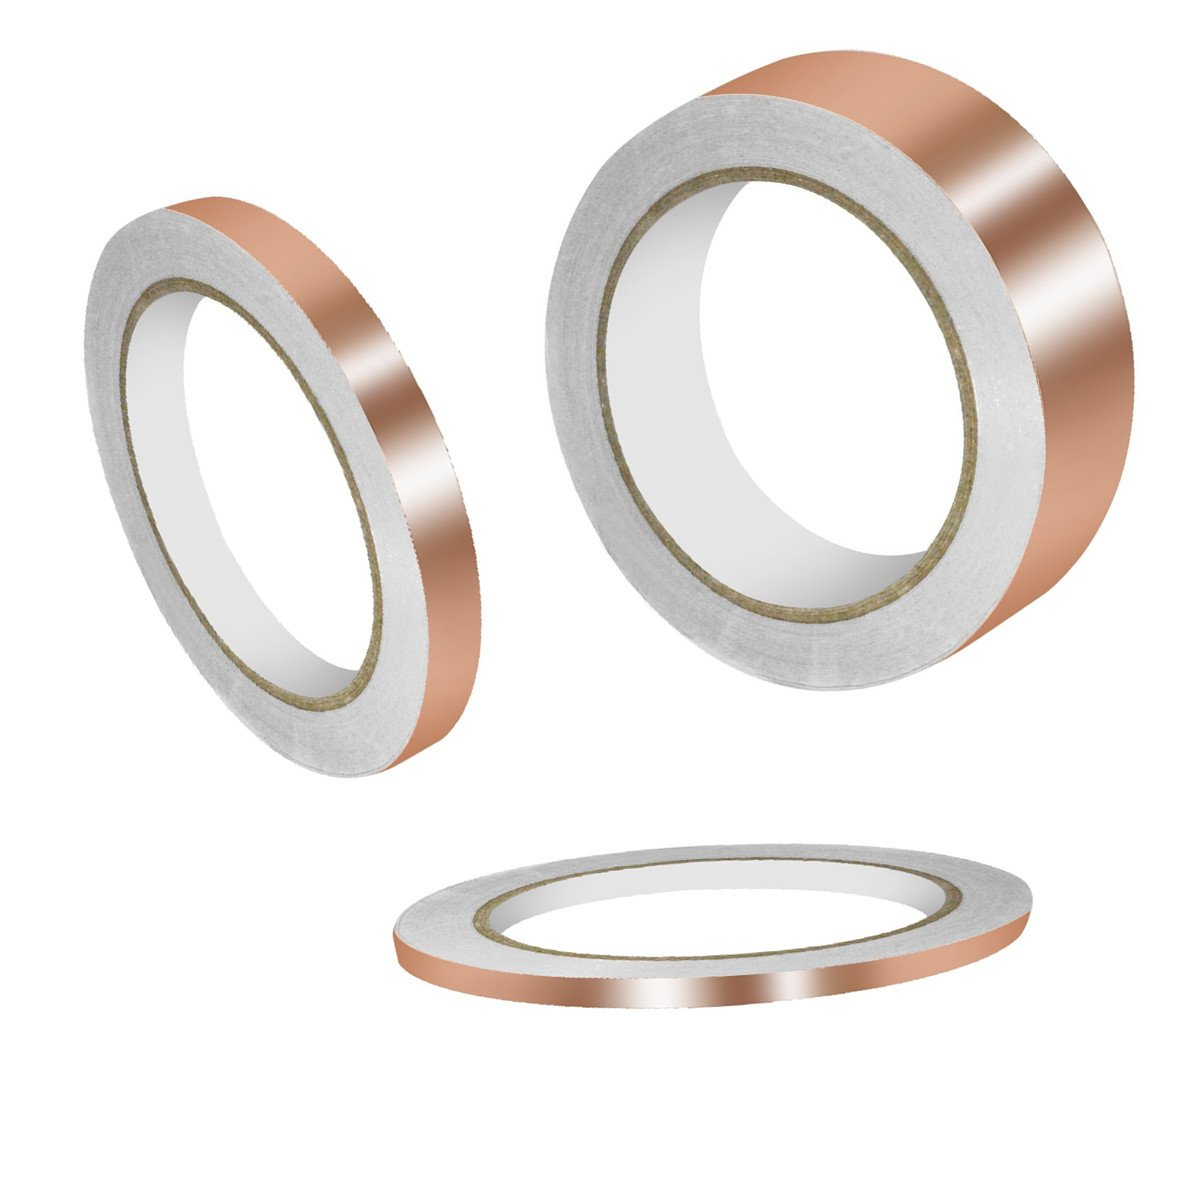 3 Pieces Single-sided Conductive Copper Foil Tape 22 Yards for EMI Shielding, Stained Glass, Art Work, Soldering, Electrical Repairs, Grounding (6 mm, 13 mm, 25 mm)